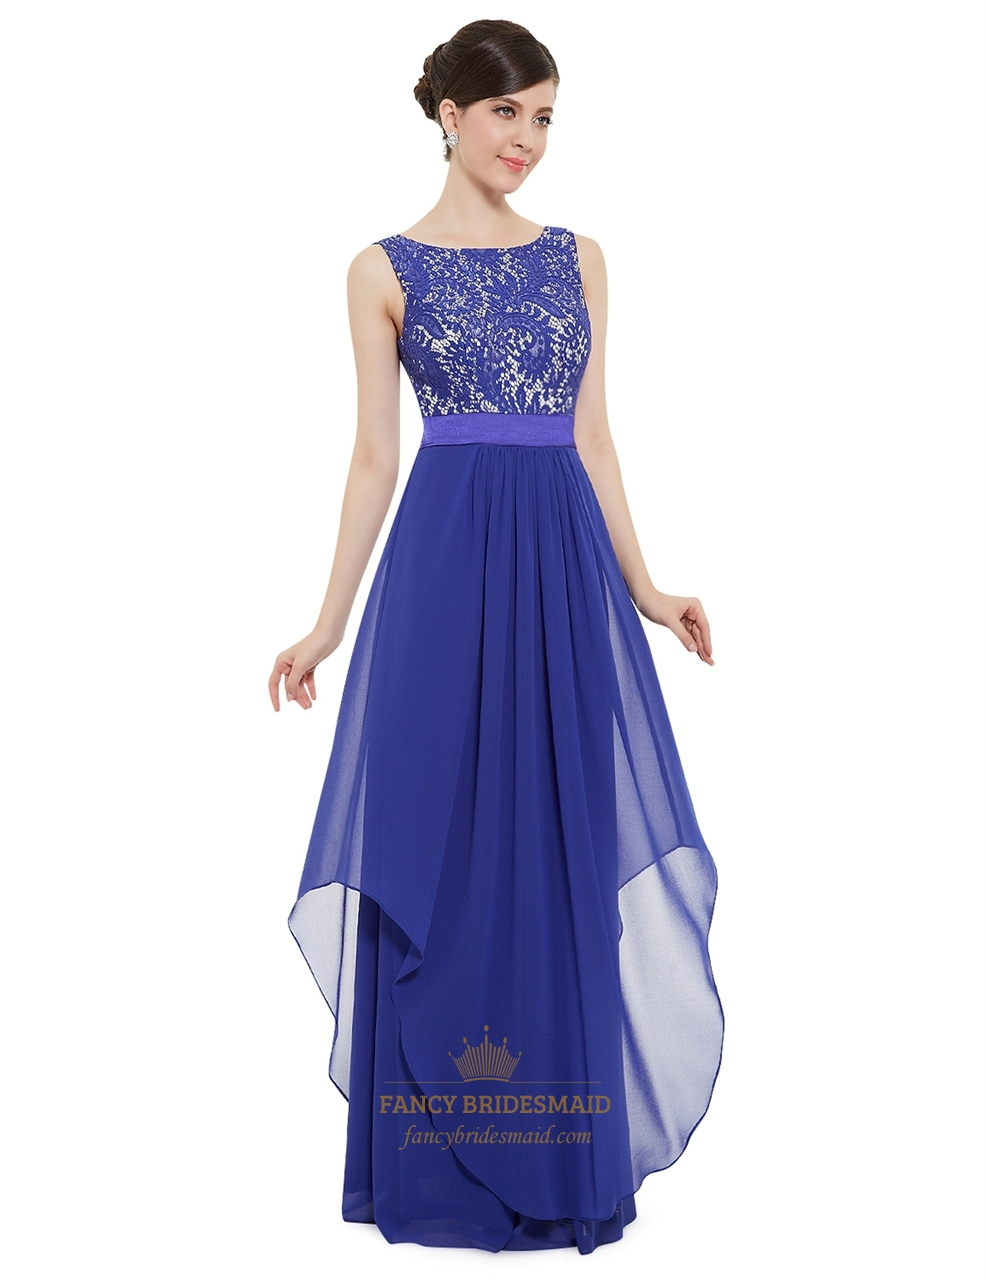 elegant royal blue chiffon long bridesmaid dresses with lace bodice fancy bridesmaid dresses. Black Bedroom Furniture Sets. Home Design Ideas